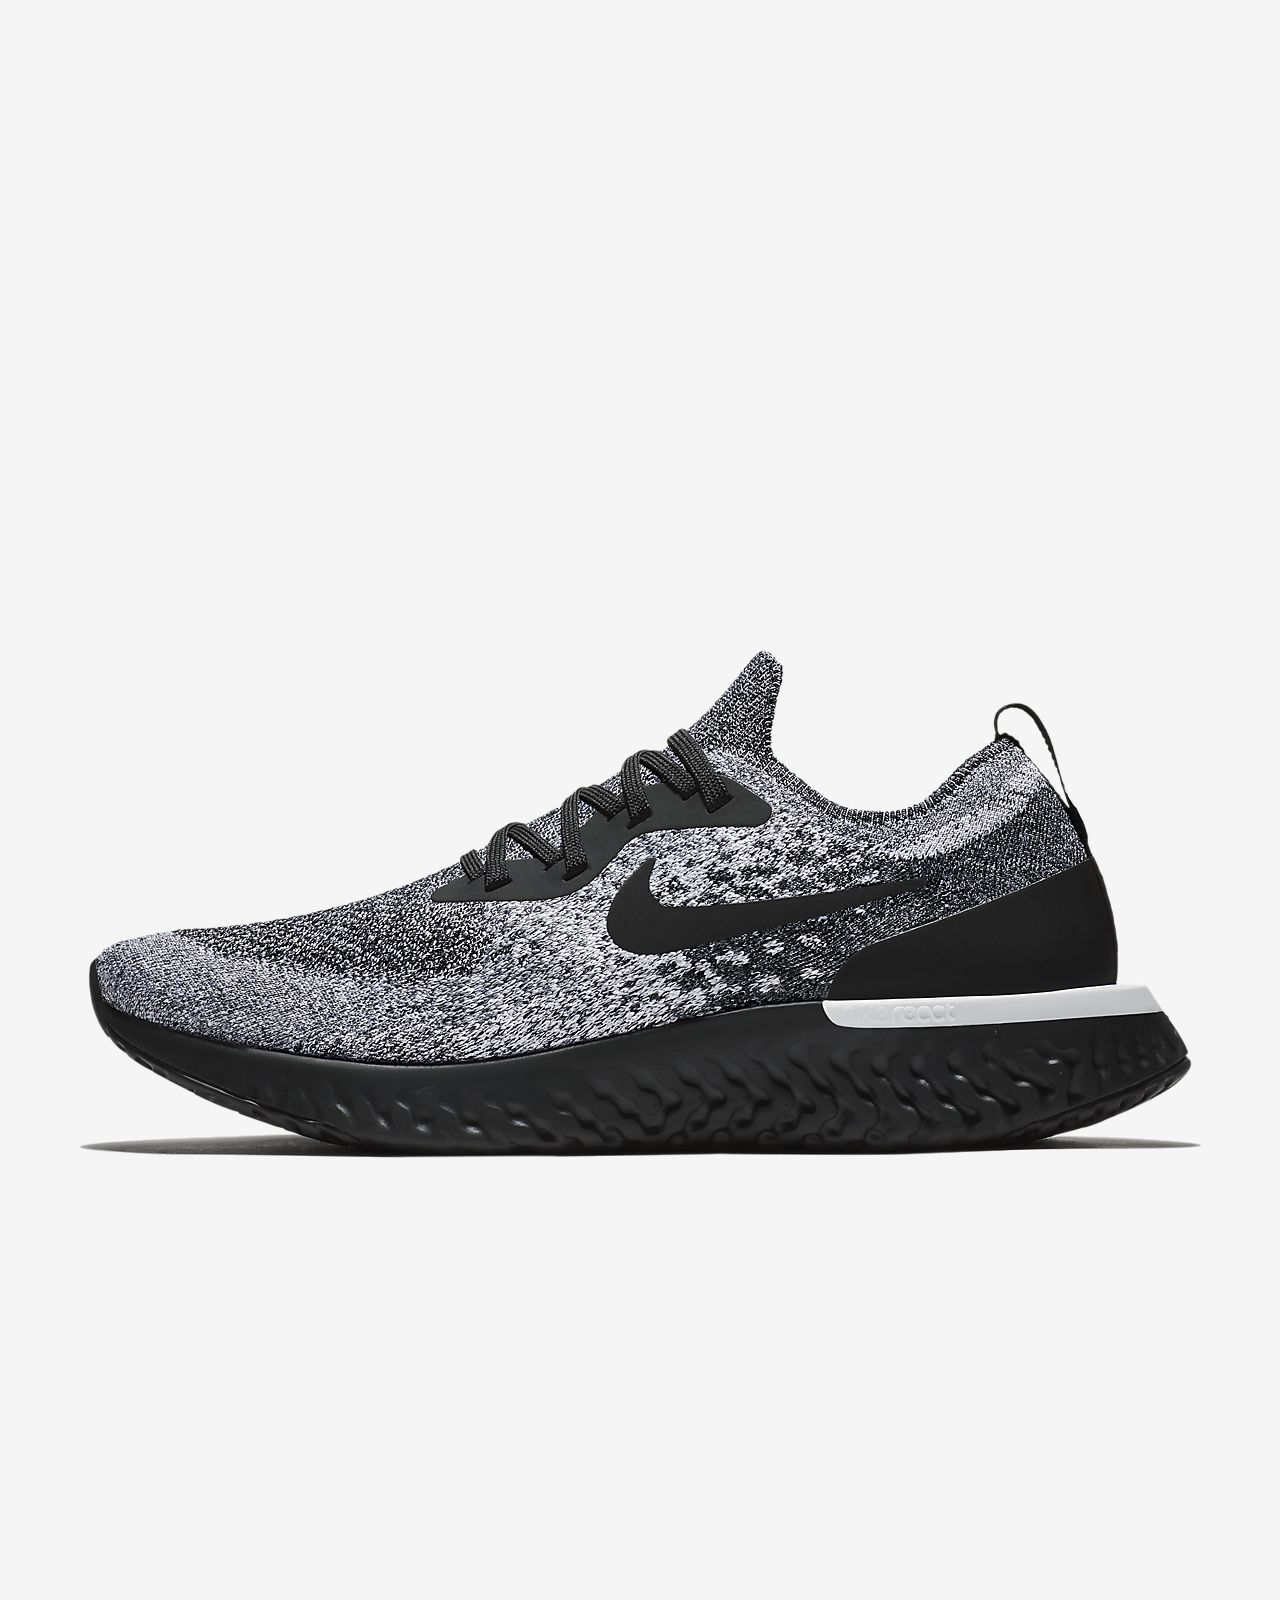 new product 79479 b7411 Men s Running Shoe. Nike Epic React Flyknit